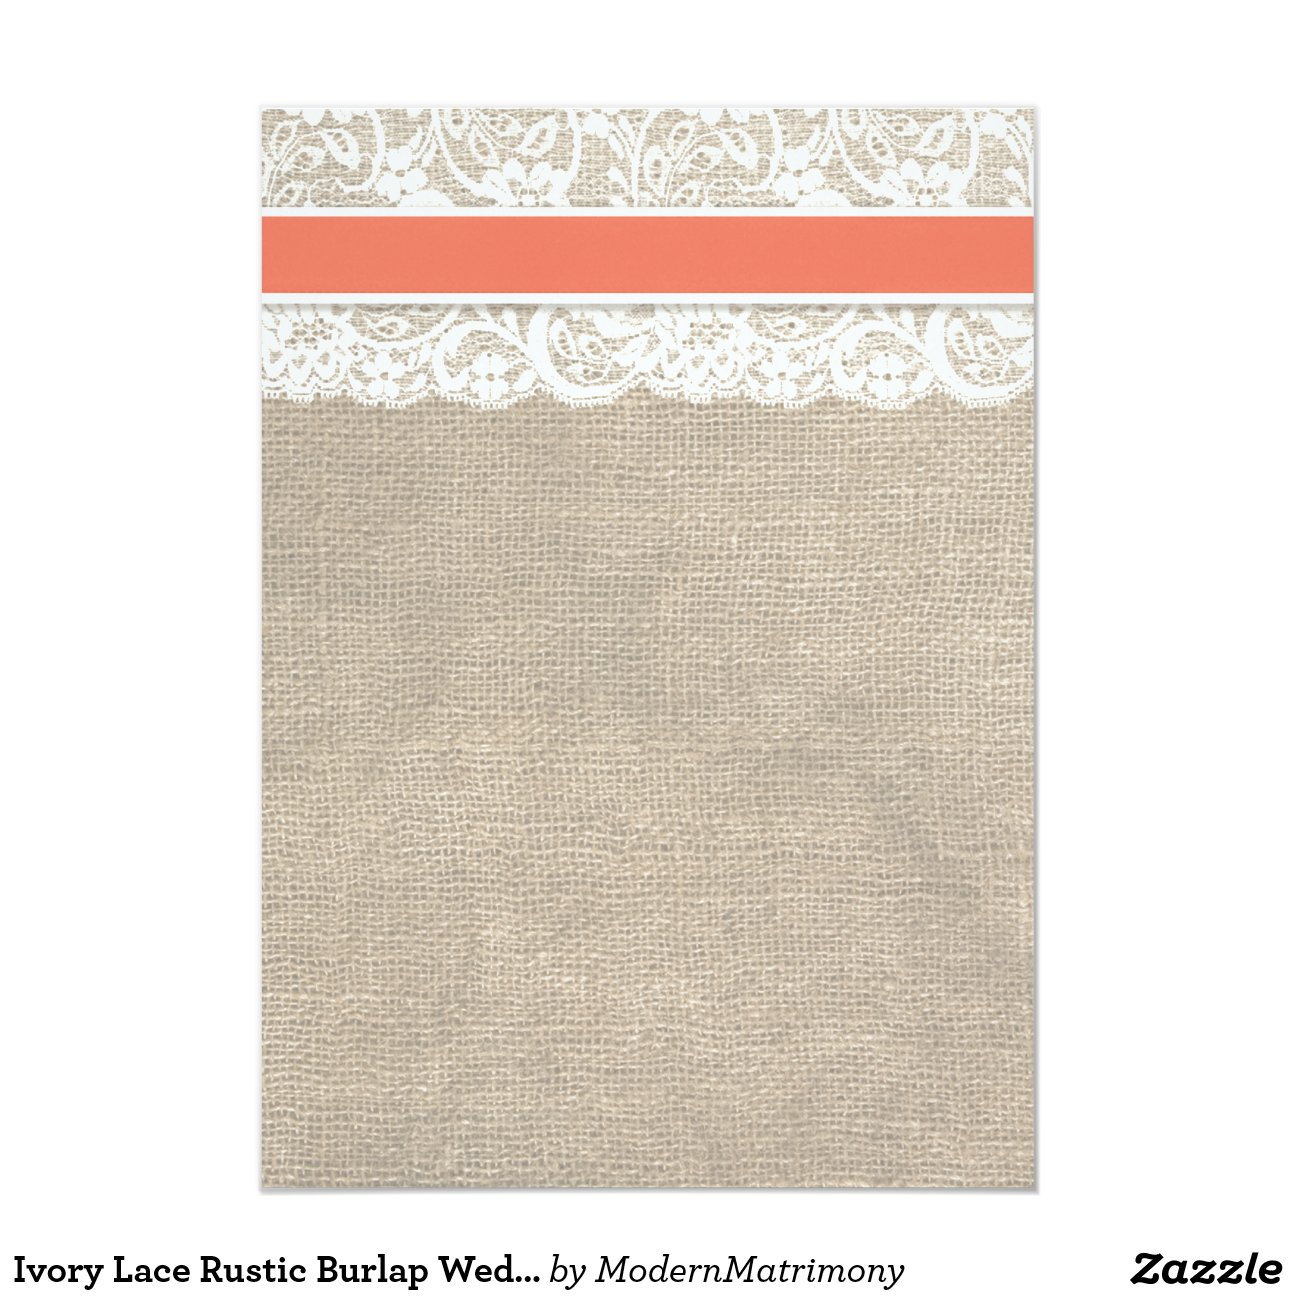 Genial Lace Burlap Lace Background Free Lace Background Image Burlap Ivory Lace Rustic Burlap Ivory Lace Background Ivory Lace Background 2018 Images S Burlap inspiration Burlap And Lace Background